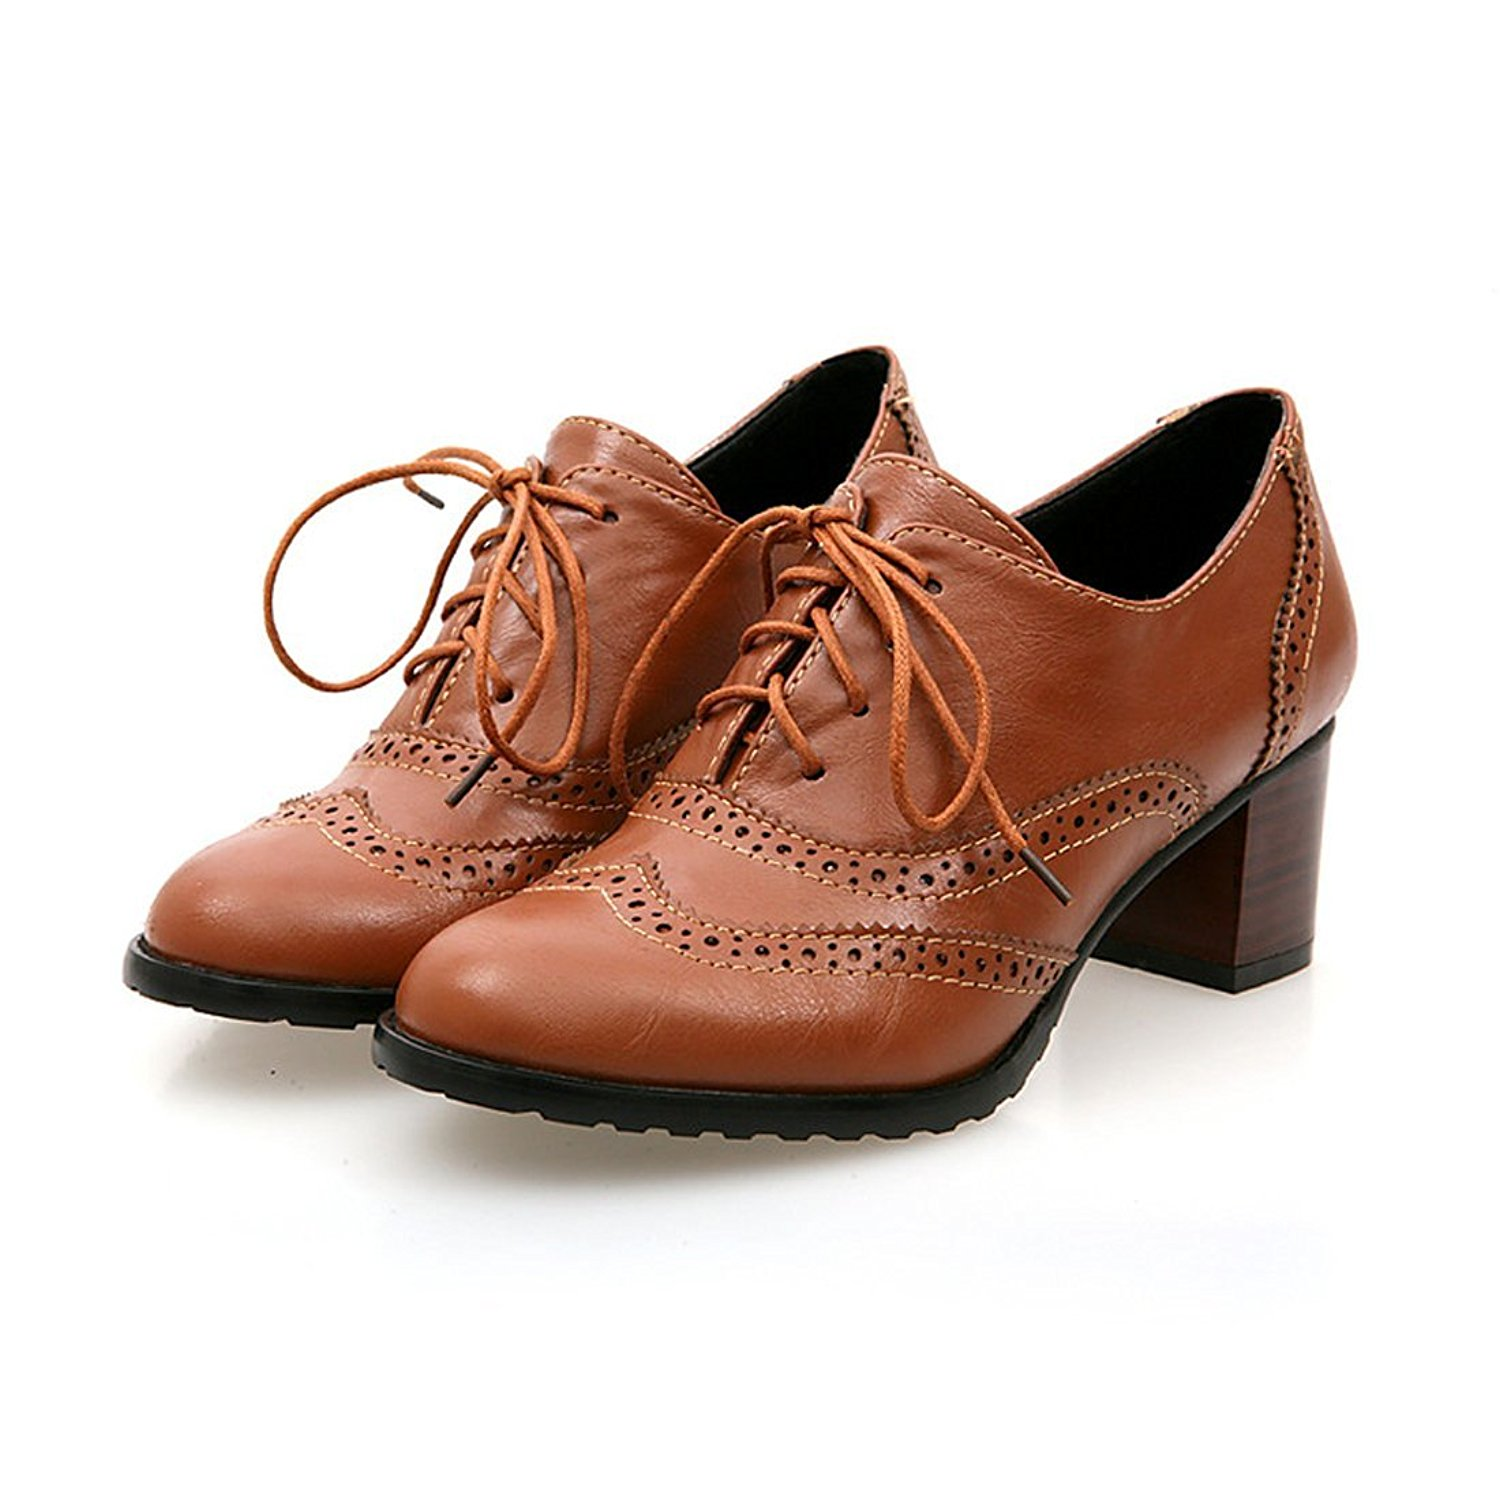 41a0f96a4e6 Get Quotations · Milesline England Brogue Shoe Womens Lace-up Mid Heel Wingtip  Oxfords Vintage PU Leather Shoes